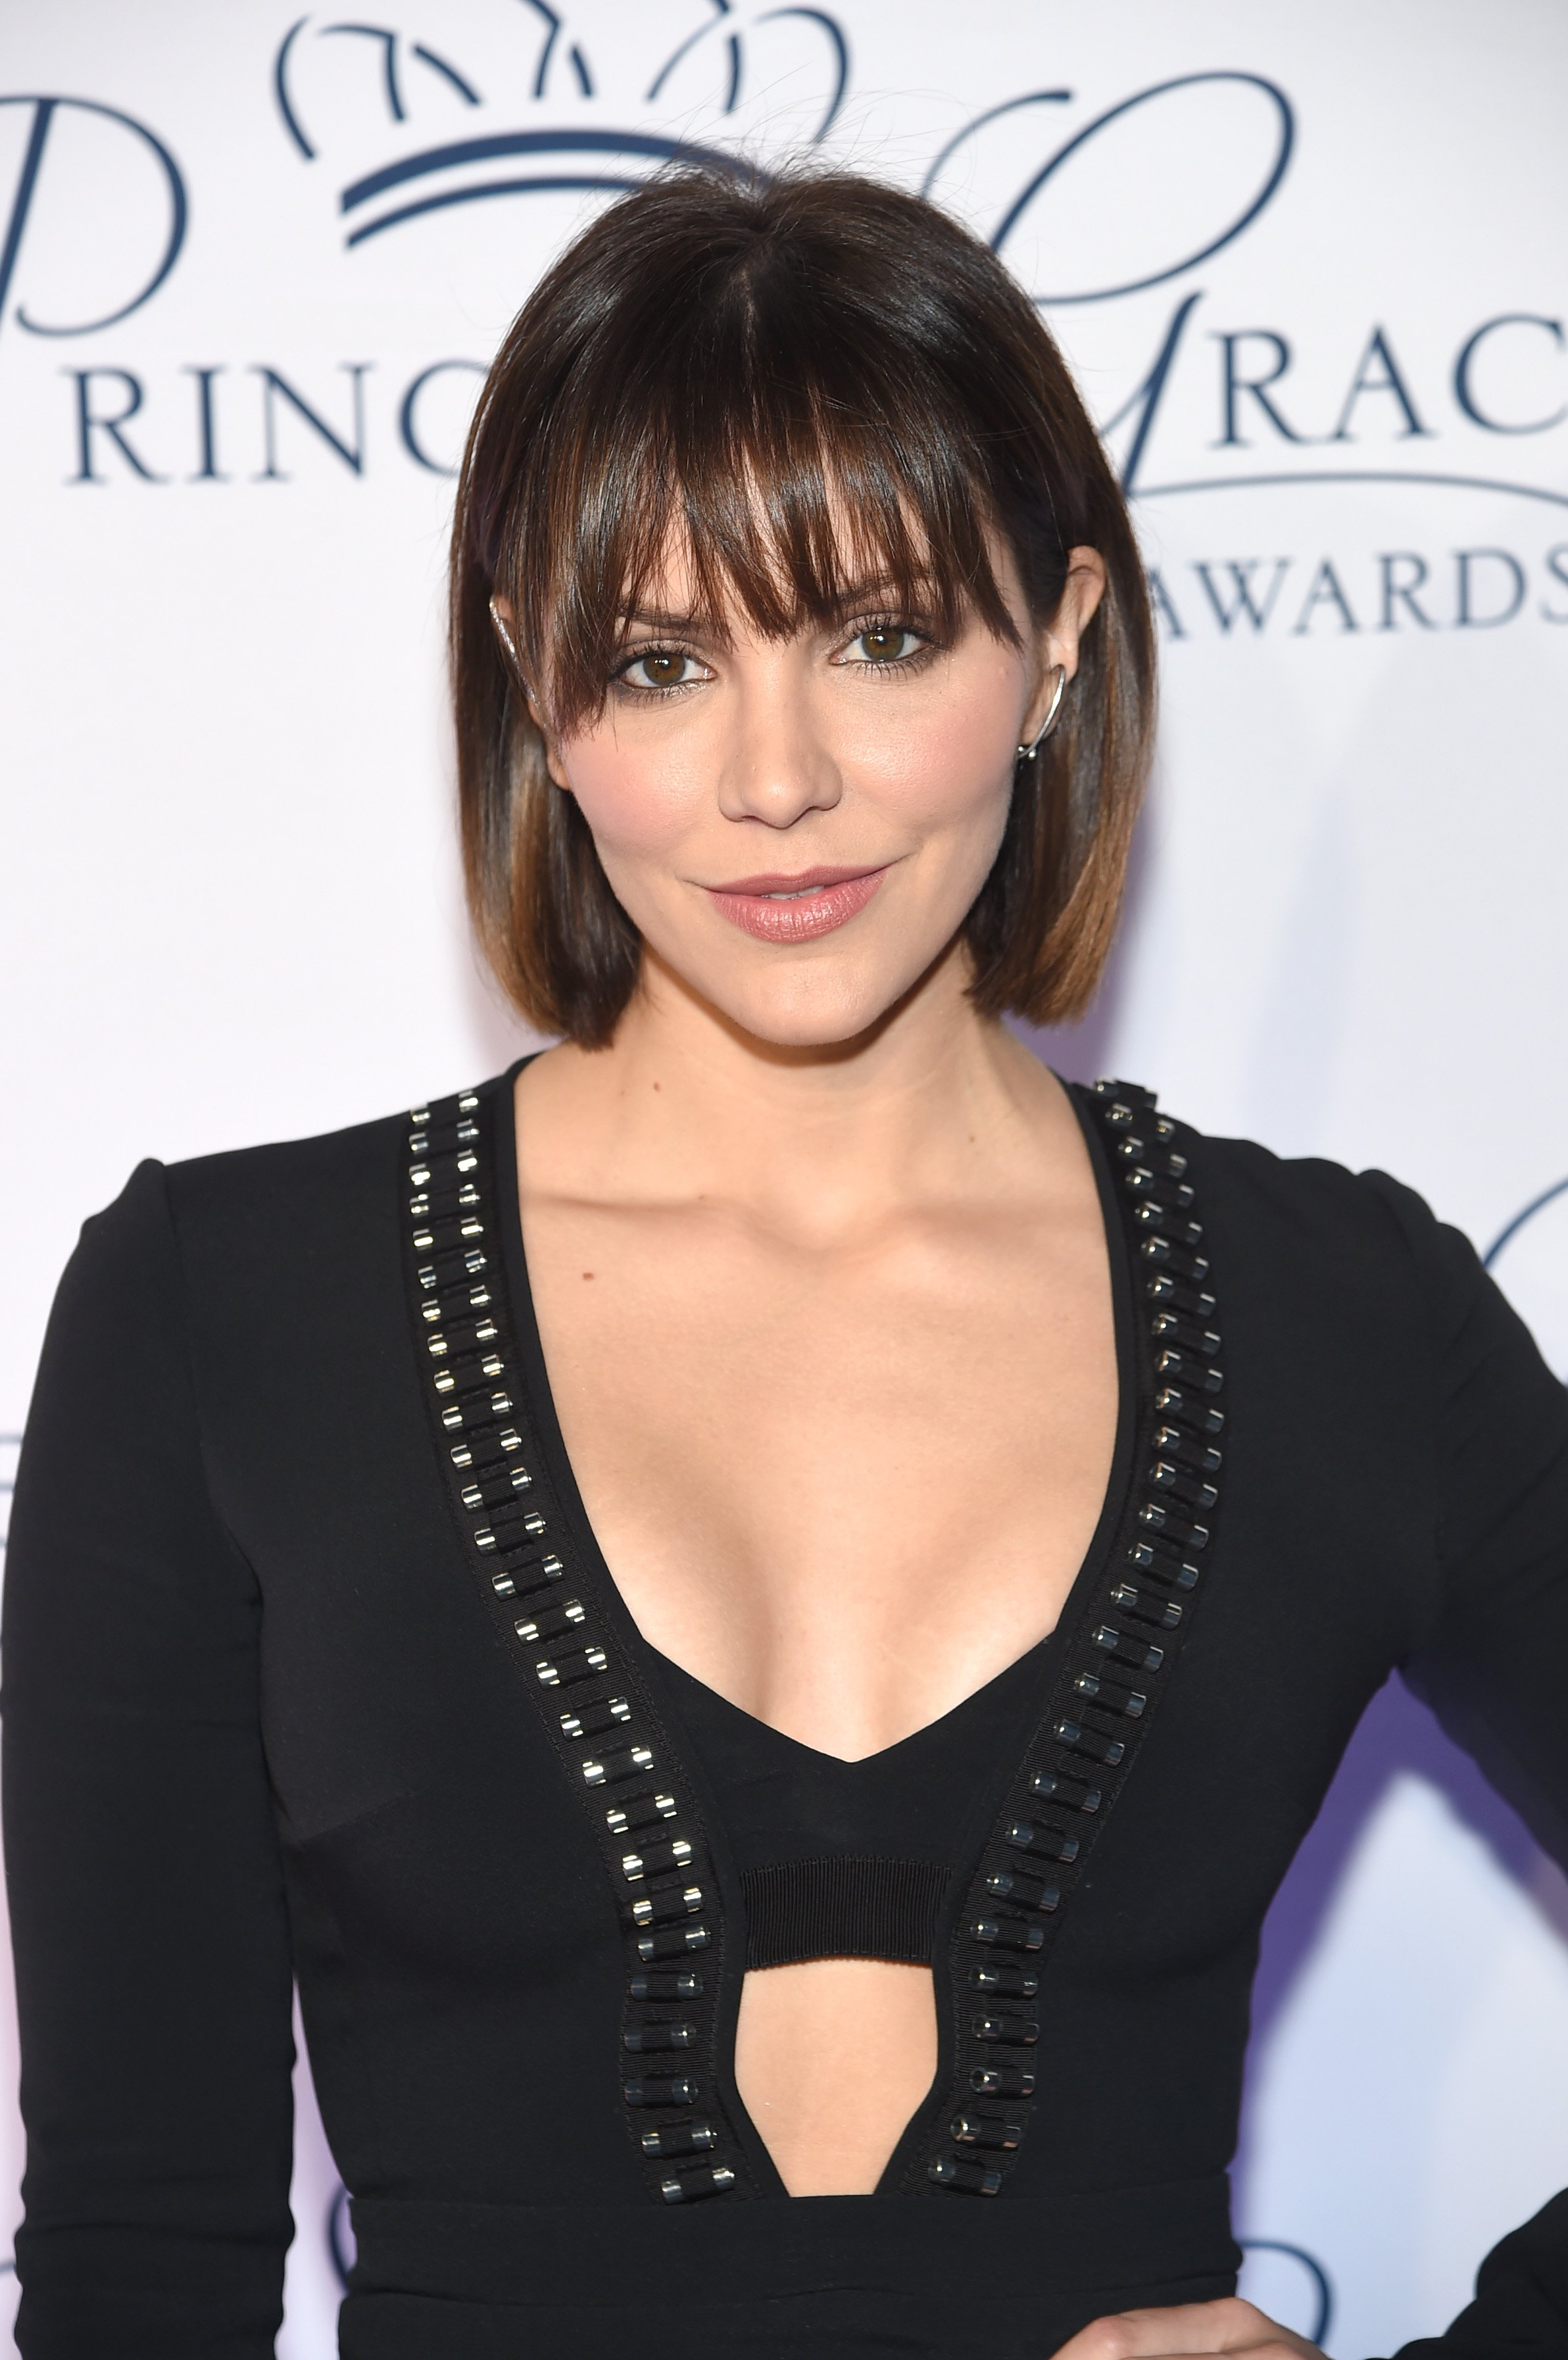 Katharine McPhee attends the 2018 Princess Grace Awards Gala at Cipriani 25 Broadway on October 16, 2018 in New York City | Photo: Getty Images